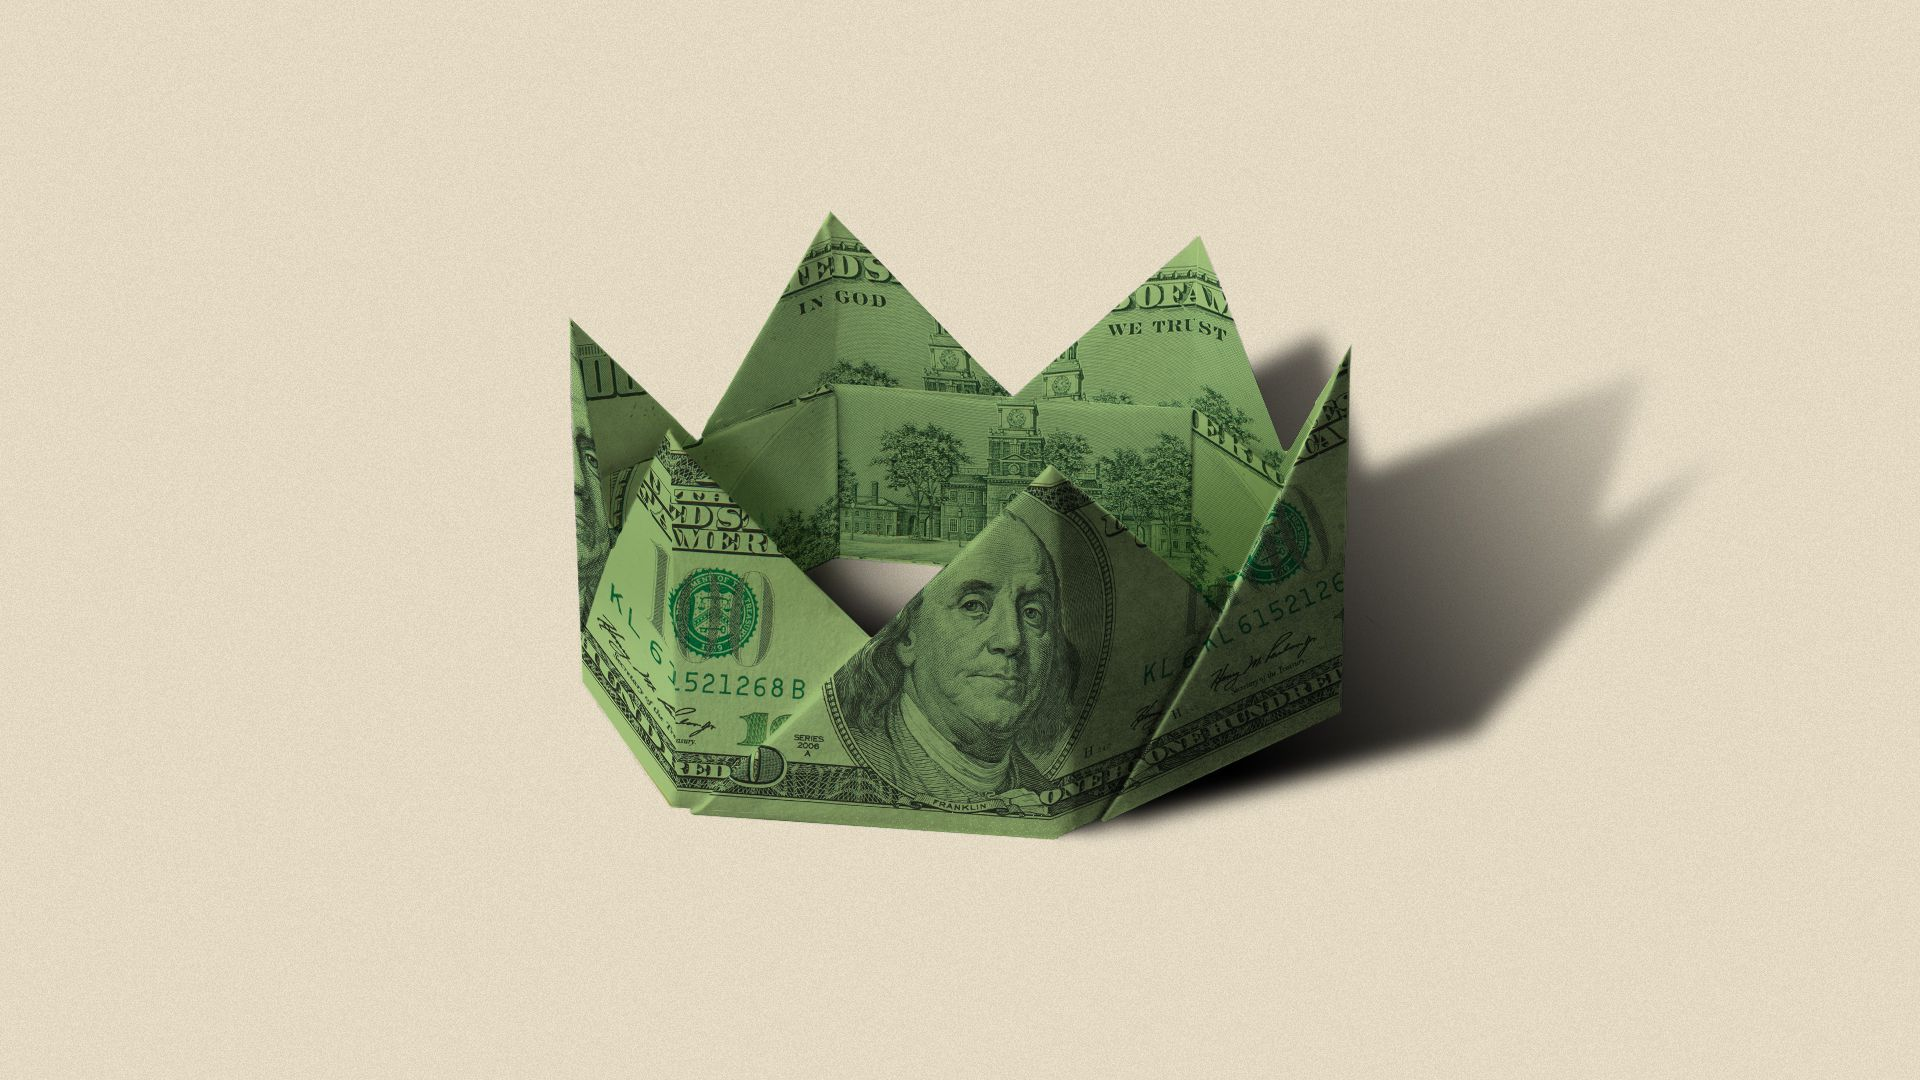 Illustration of a green crown made of folded dollar bills